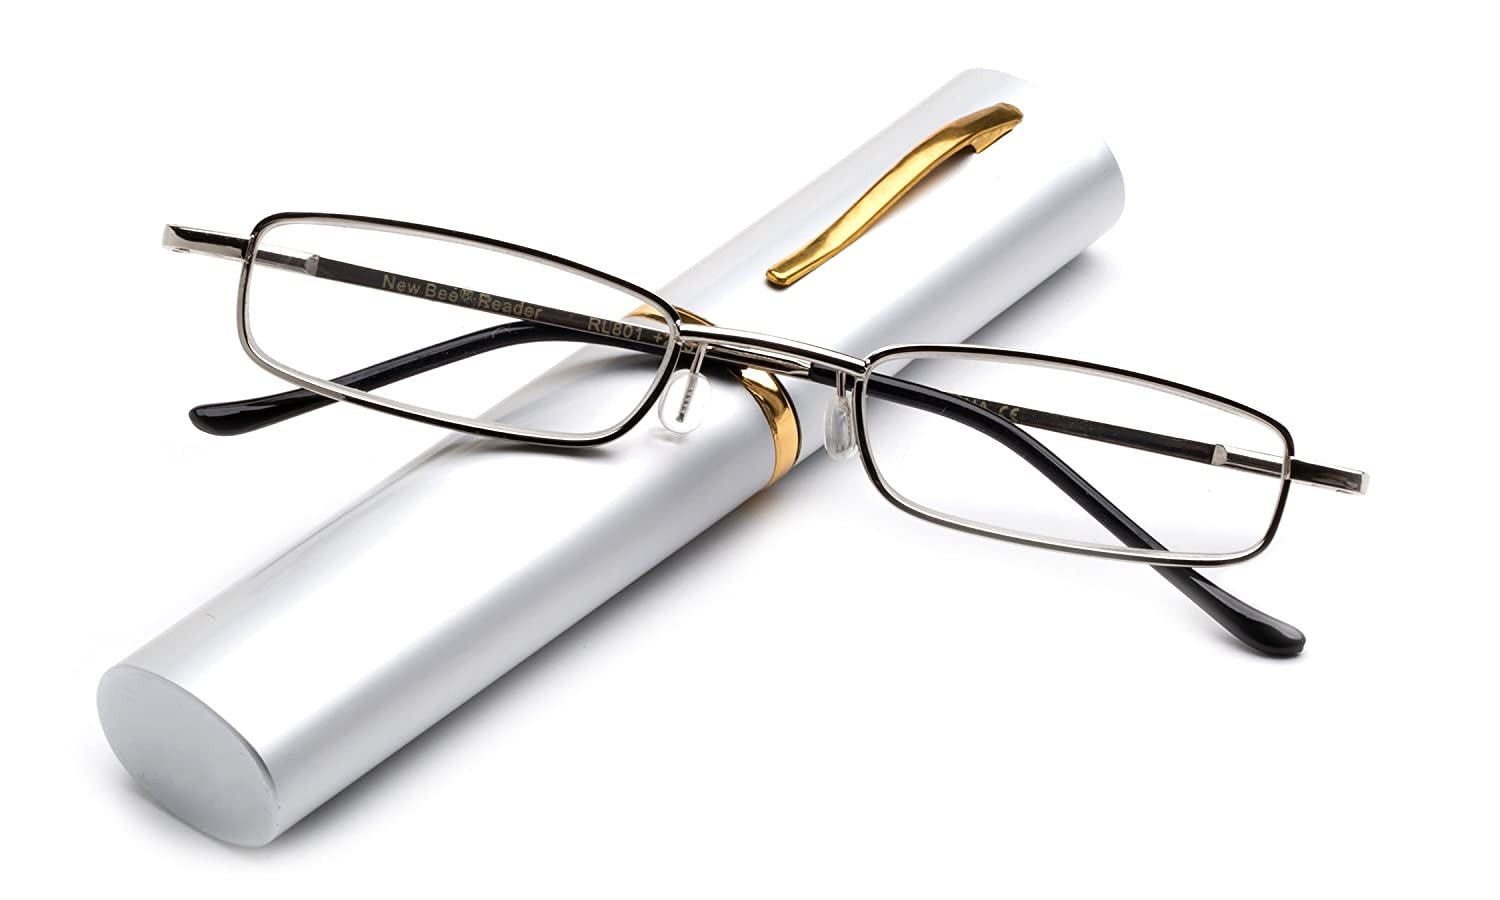 Newbee Fashion – Slim Compact Light Weight Spring Temple Reading Glasses Portable Aluminum Case Tube Readers